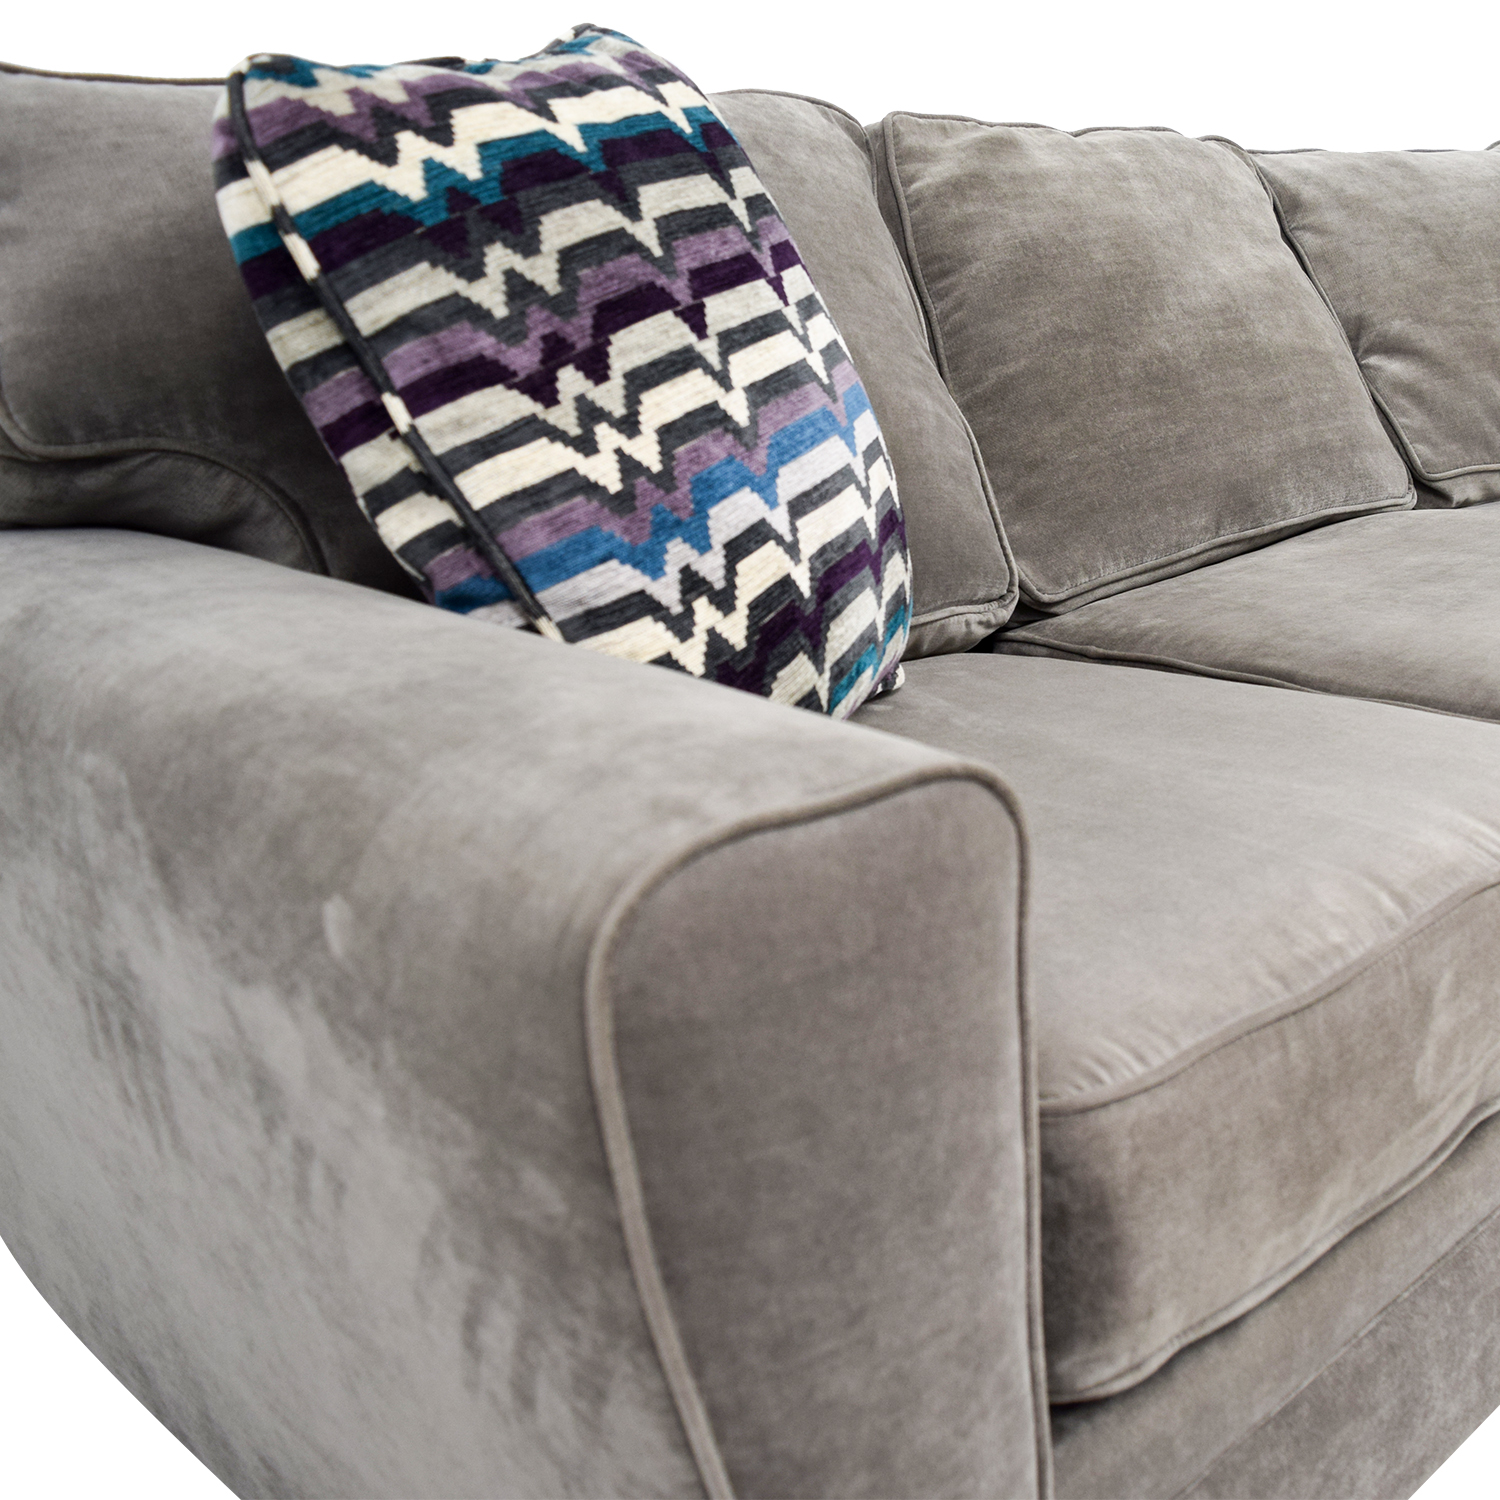 All About Artemis Ii 2pc Microfiber Sectional Sofa Gypsy Vintage